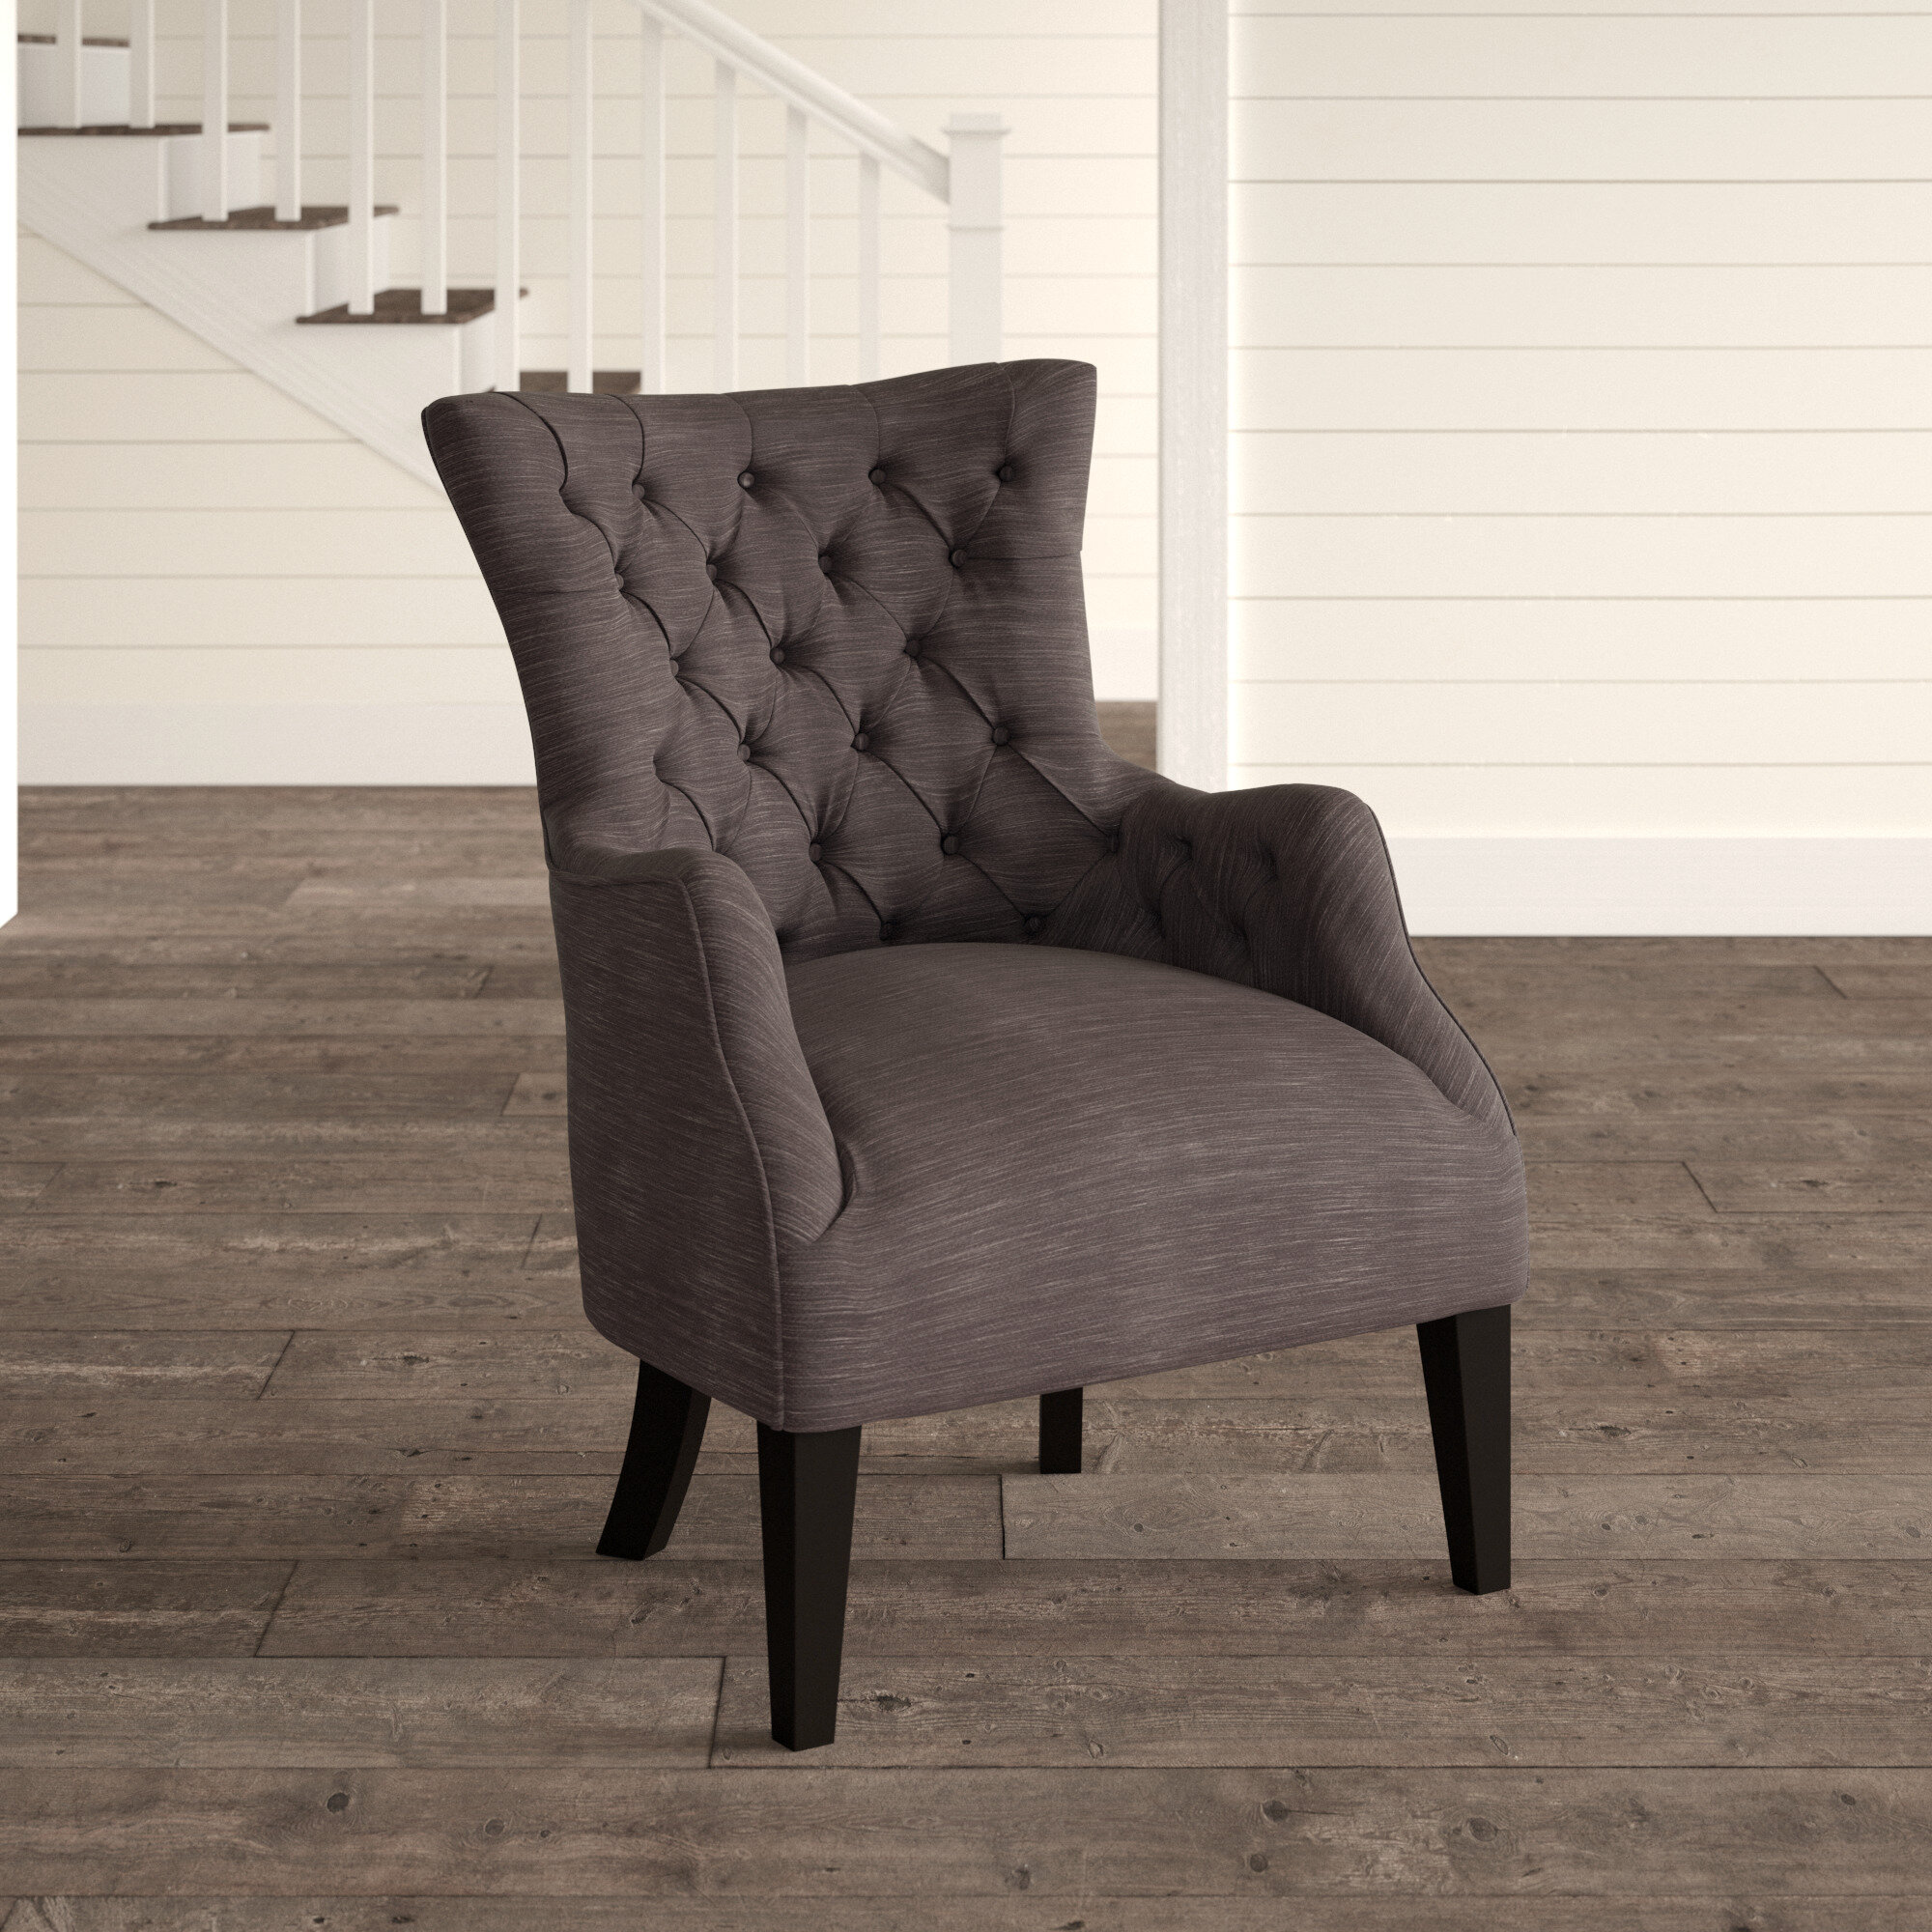 Birch Lane 30 25 Wide Tufted Polyester Wingback Chair Reviews Wayfair Ca